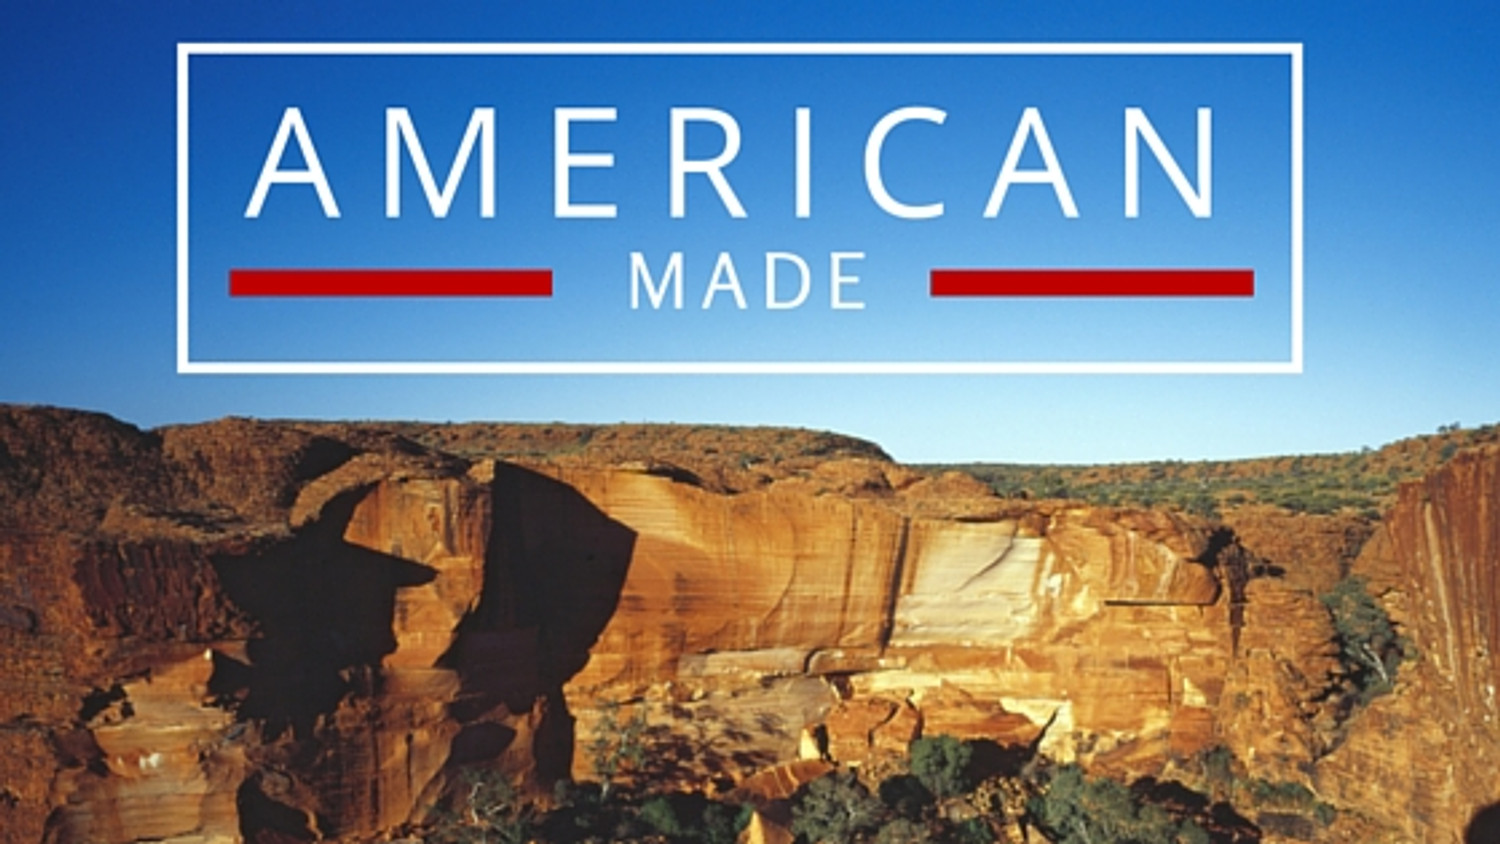 Why Should You Buy American Made?